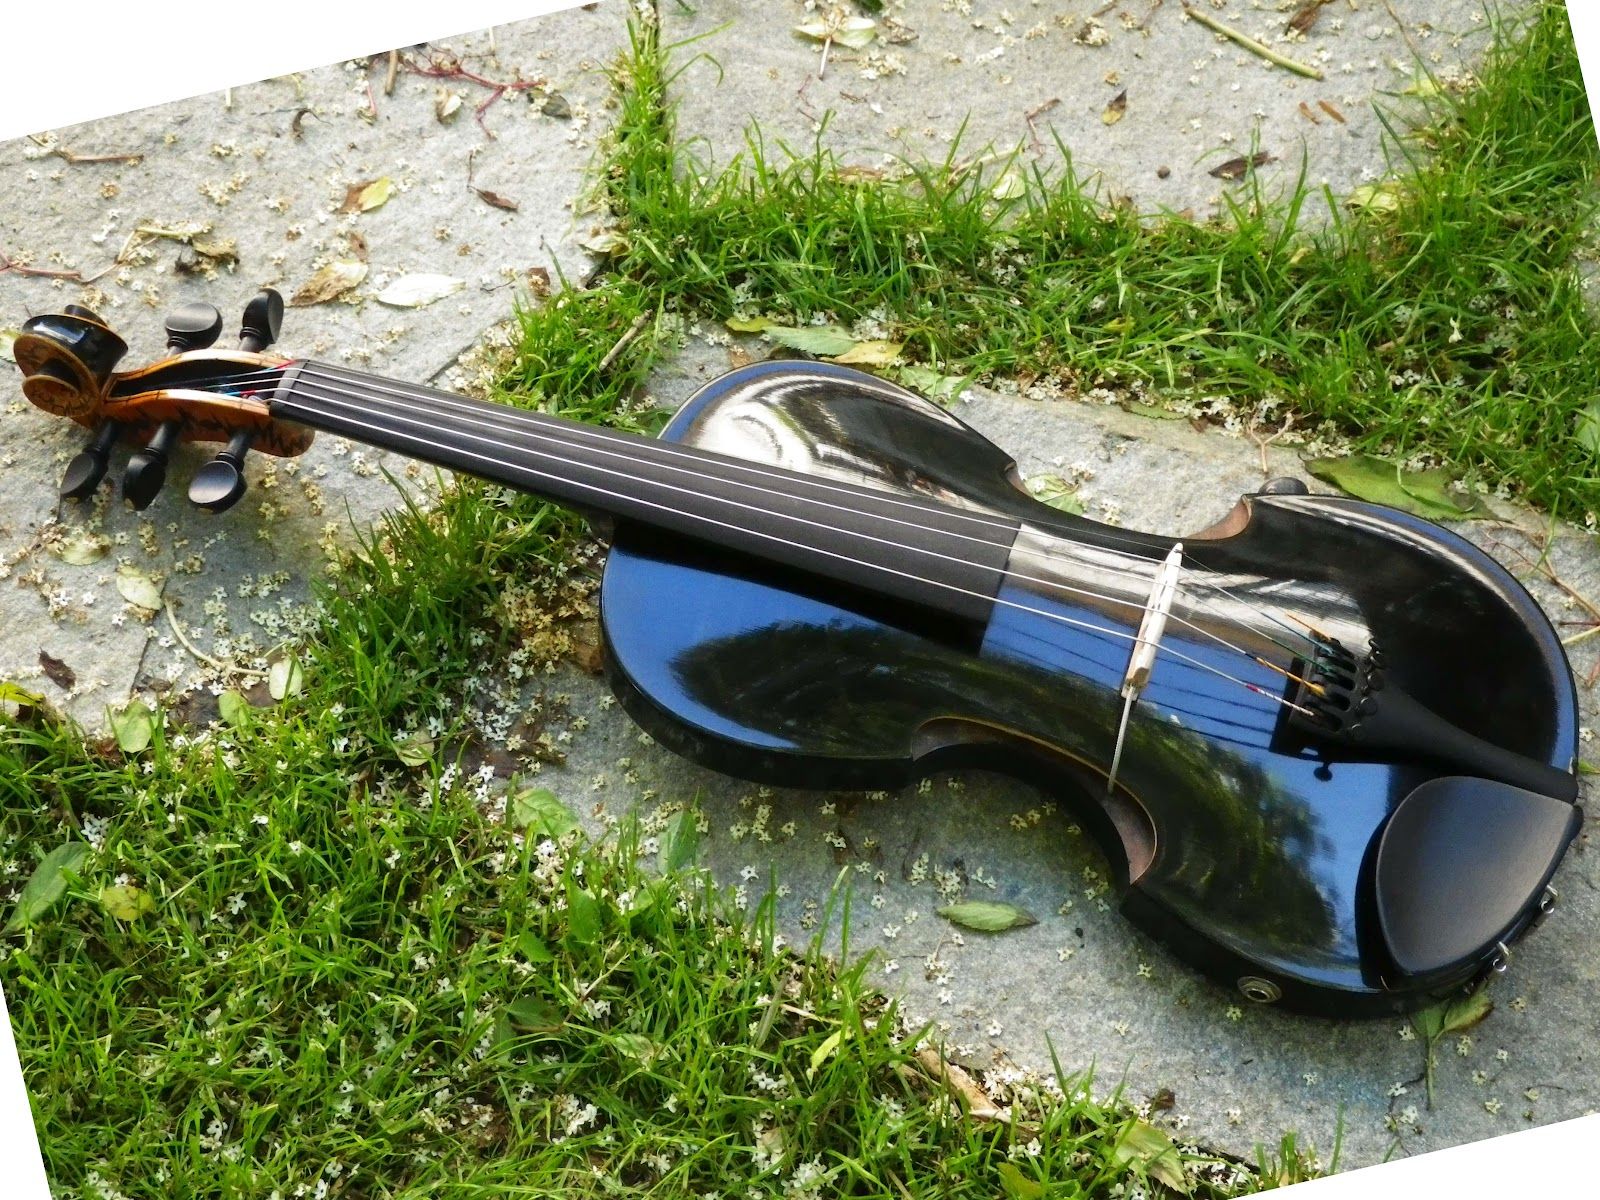 electric violin by C-Violin maker C Kober in Austria